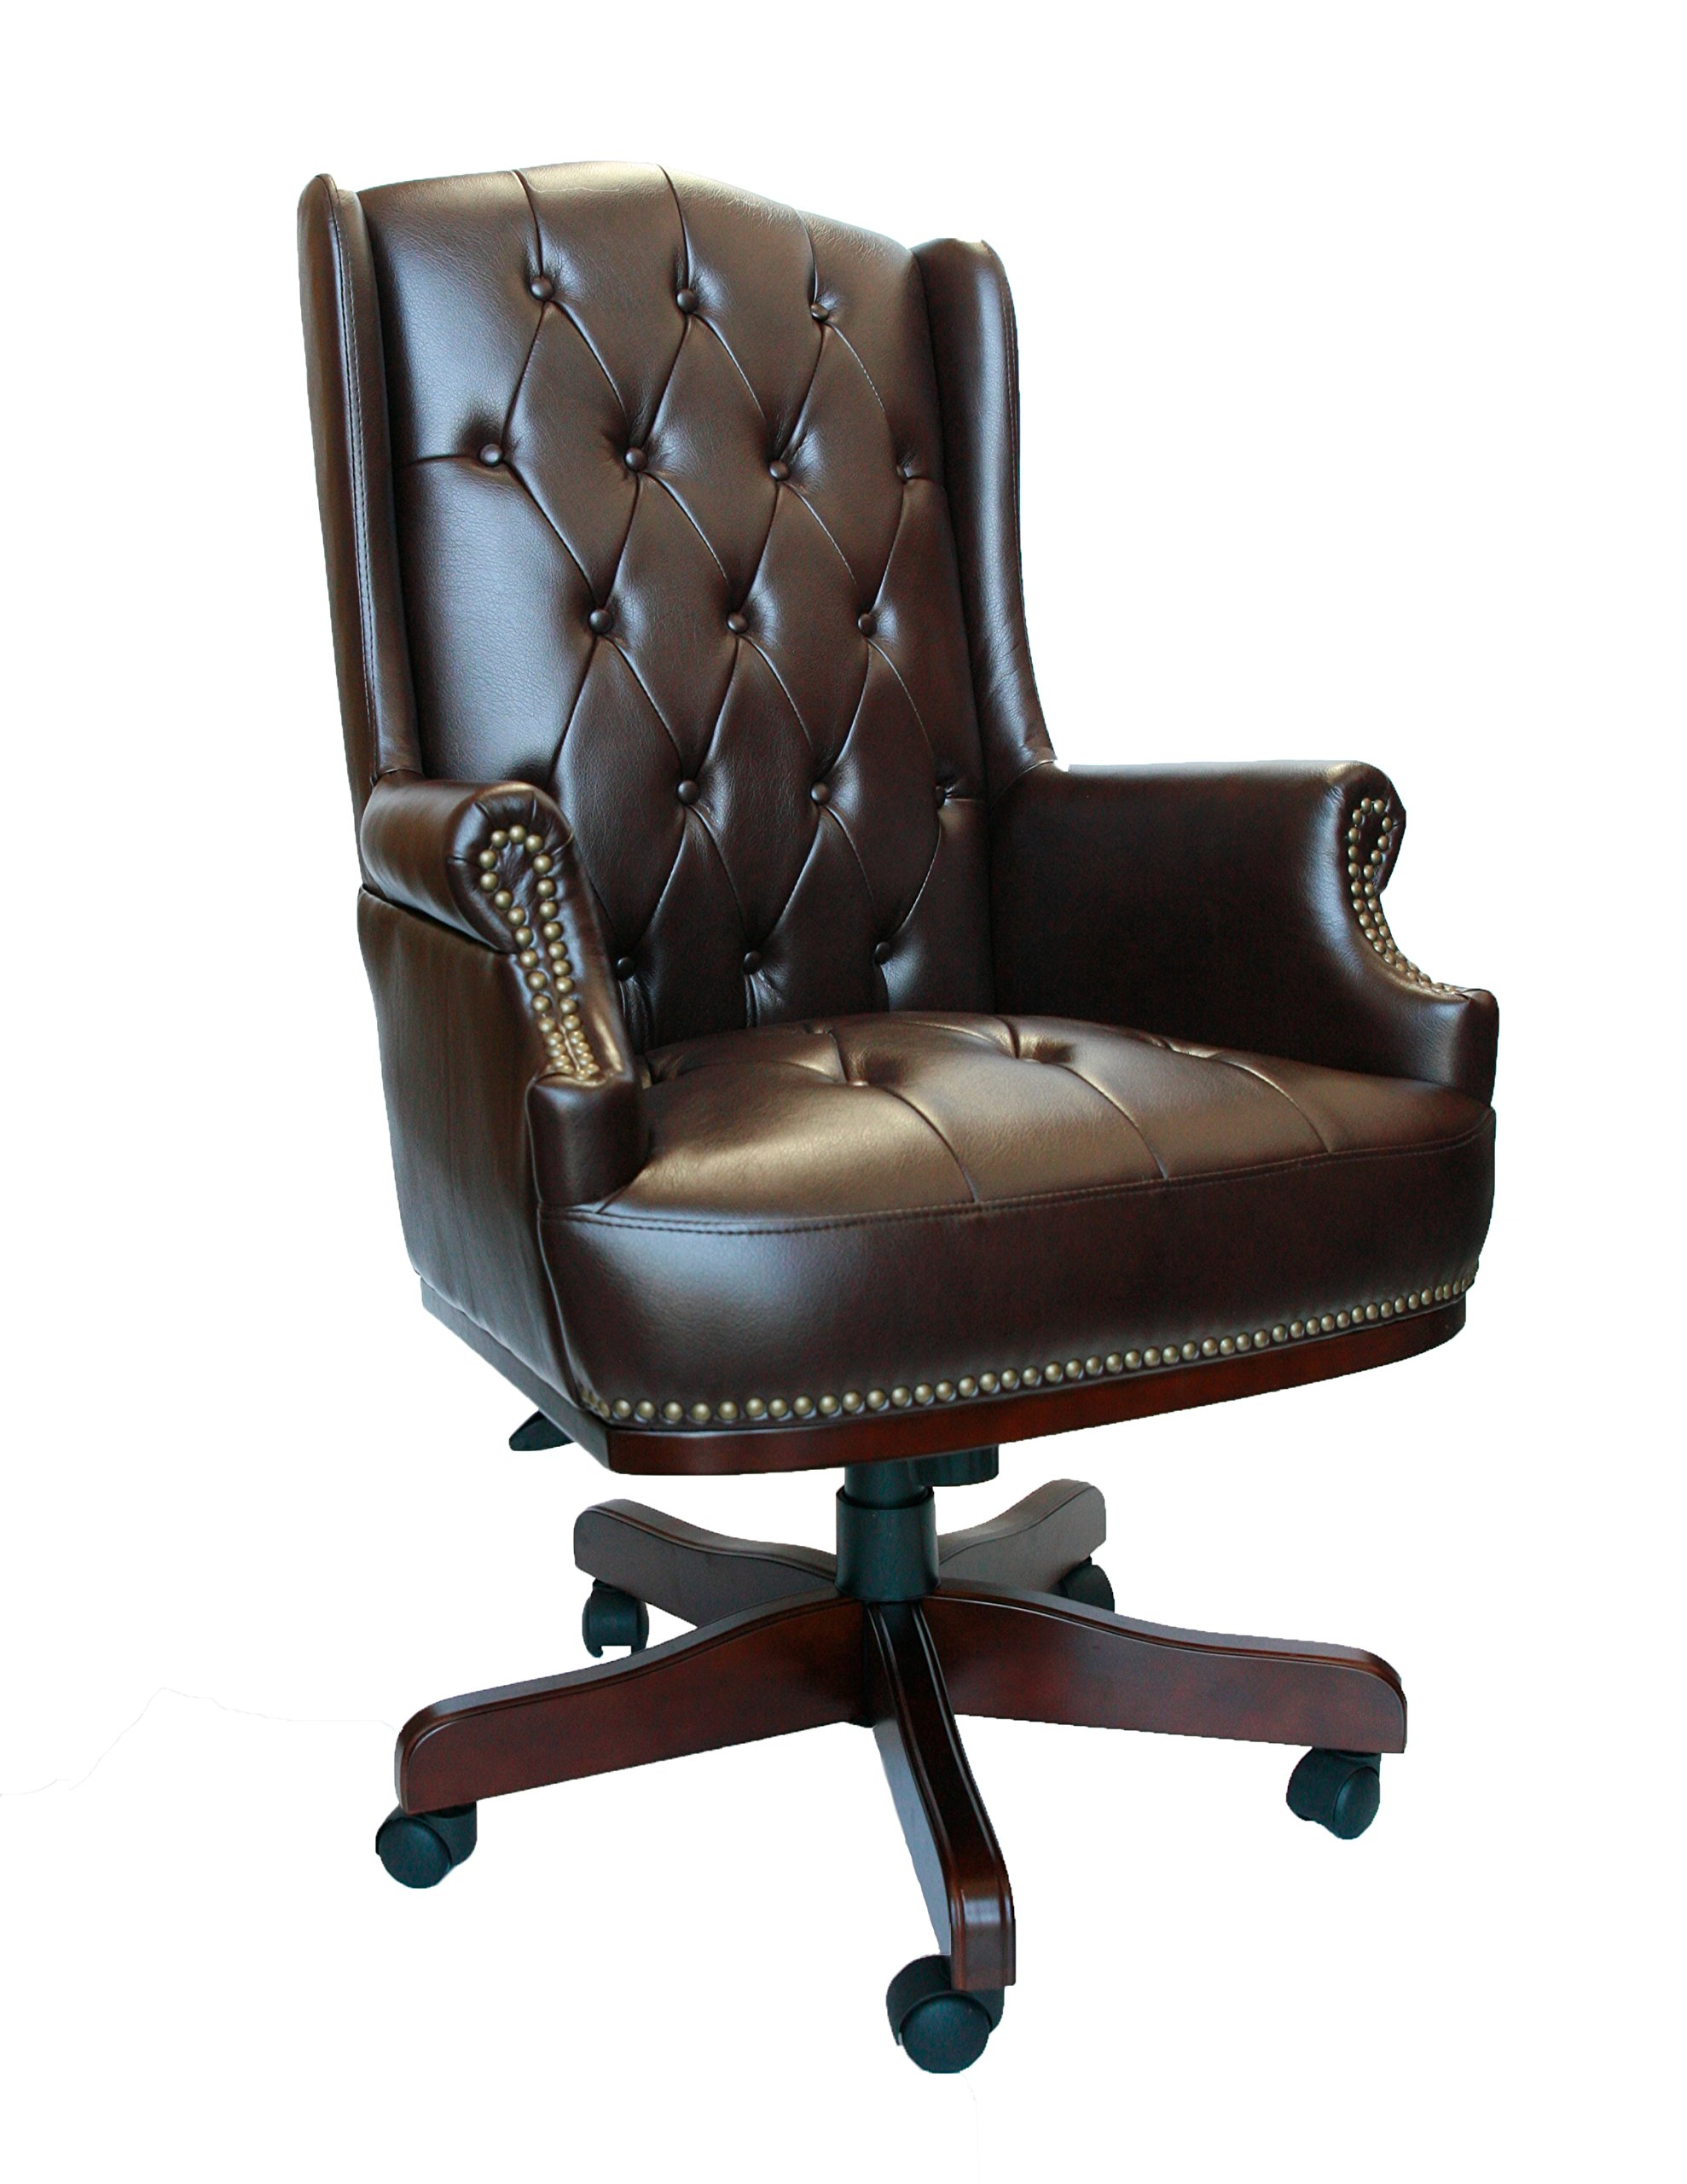 Luxury Managers Directors Chesterfield Antique Captain Style Leather Office Desk Chair Furniture Brown Buy Online In Cape Verde At Capeverde Desertcart Com Productid 48548198